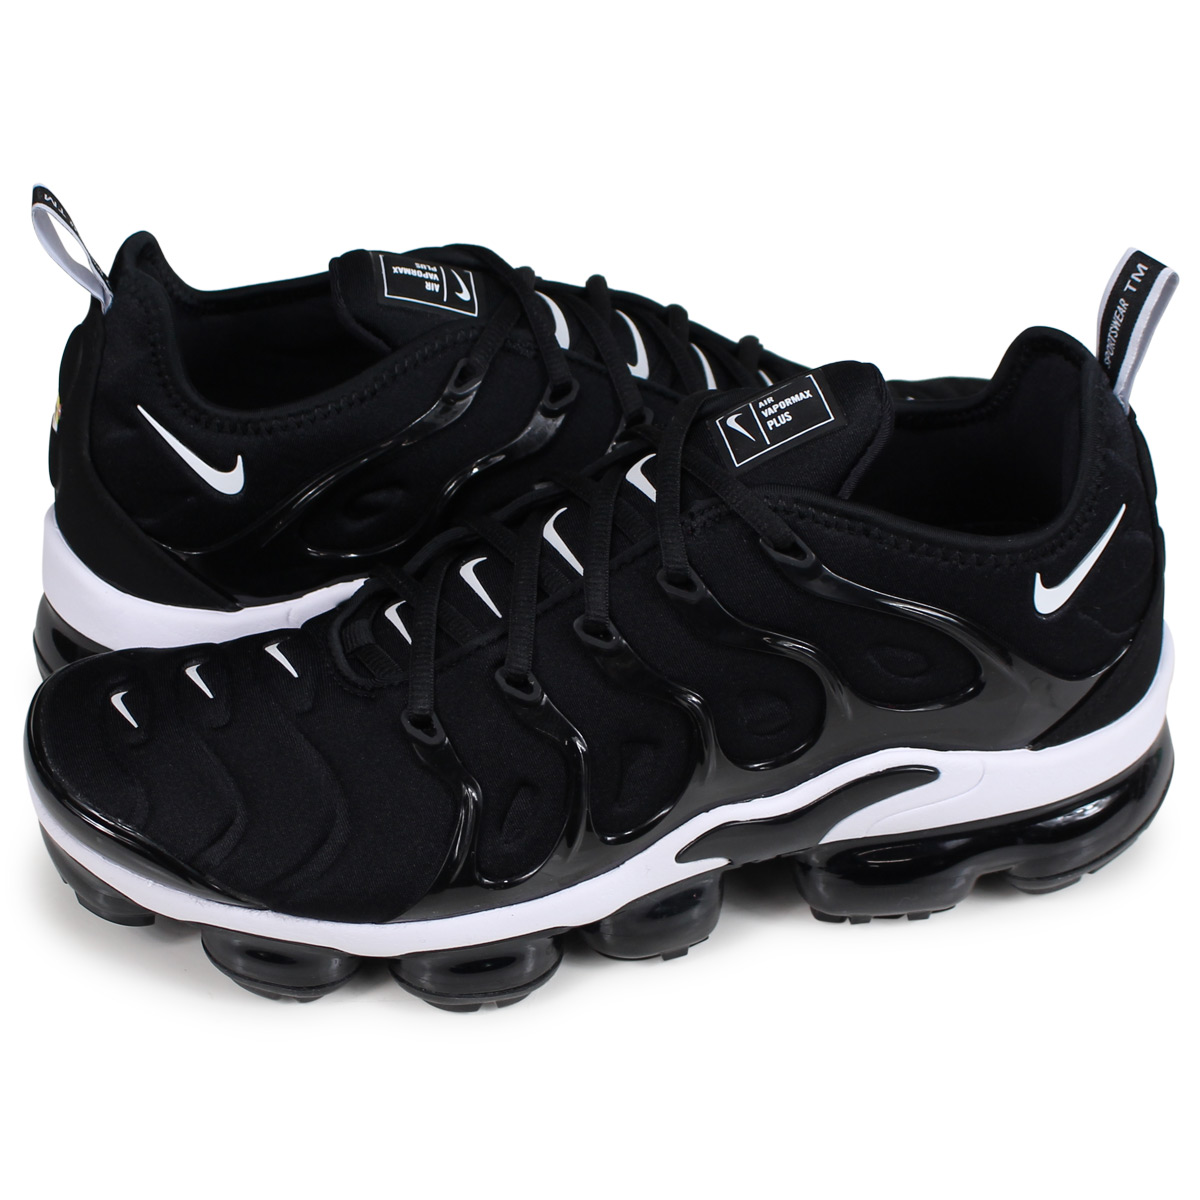 sports shoes c7d53 a5112 Nike NIKE air vapor max plus sneakers men AIR VAPORMAX PLUS black  924,453-011 [load planned Shinnyu load in reservation product 11/22  containing]